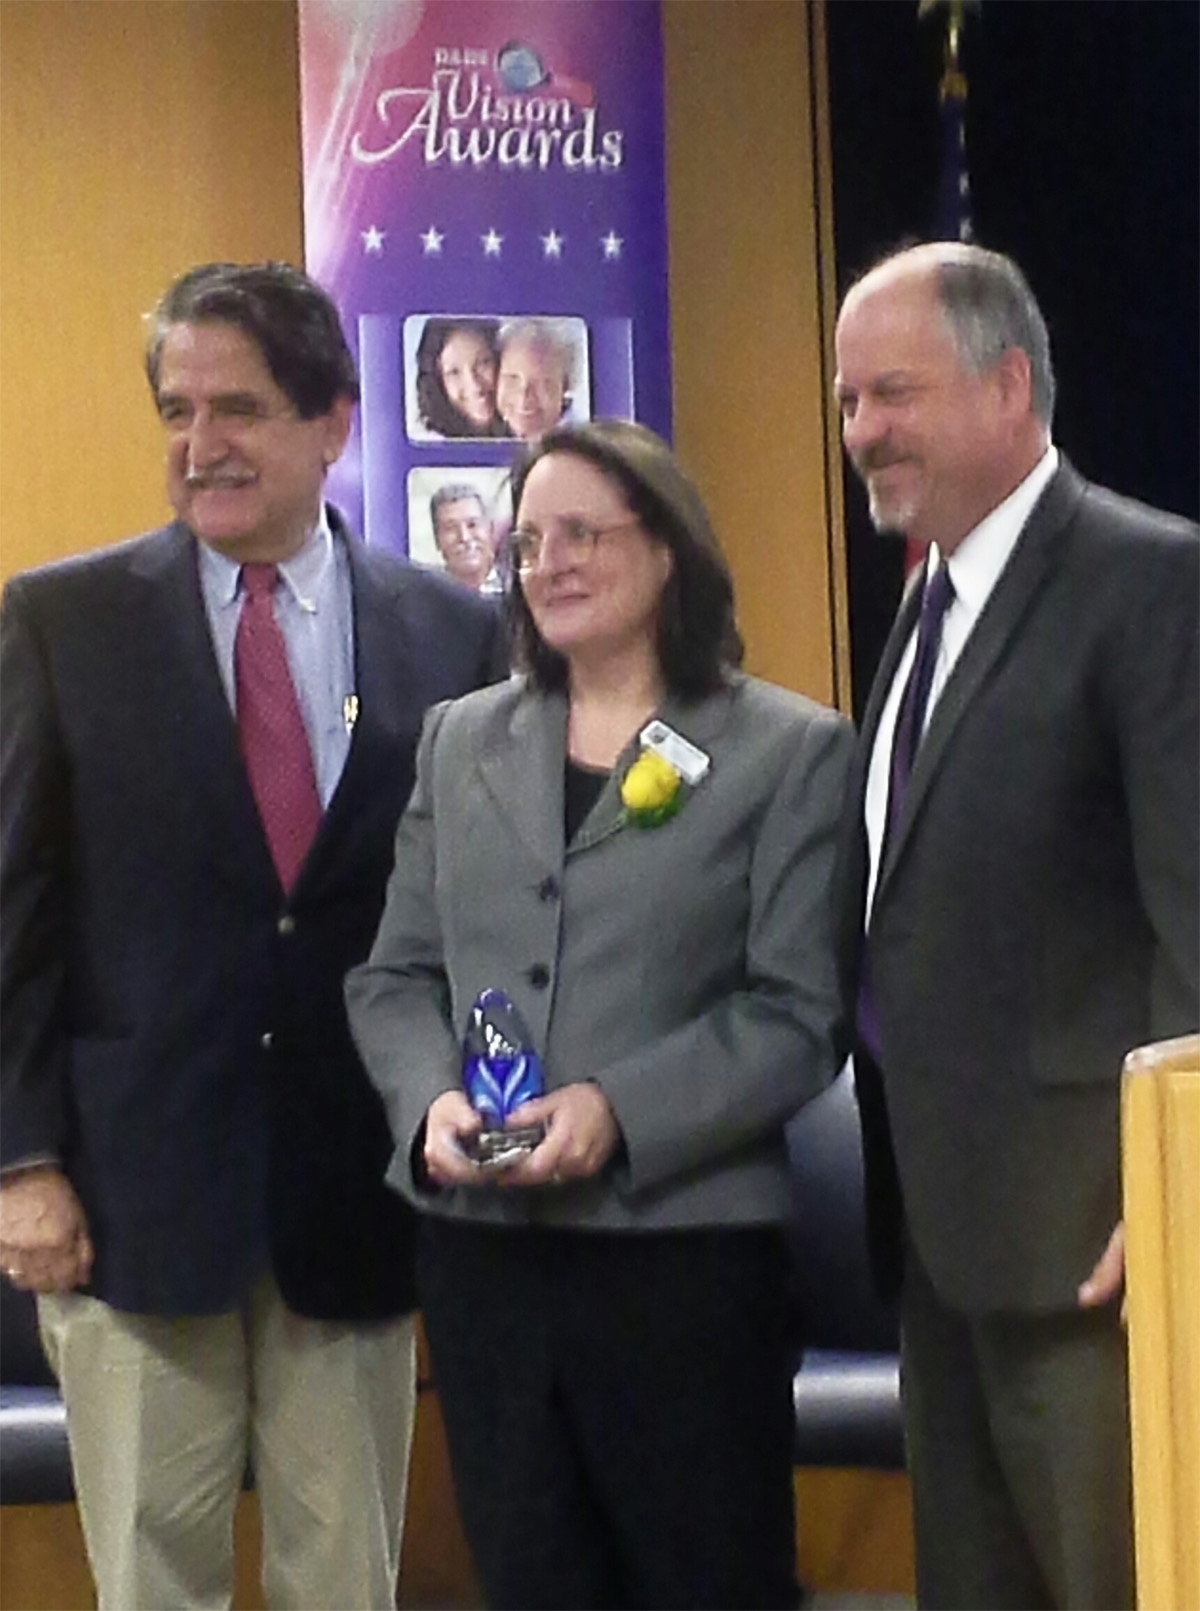 September, 2015Robin LeoGrande accepts the Texas Department of Aging and Disability Services Vision award in the category of Choices  From John J. Cueller (Left) Chairman of the Texas Aging and Disability Services Council, and Jon Weizenbaum Commissioner for the Texas Department of Aging and Disability Services (DADS)